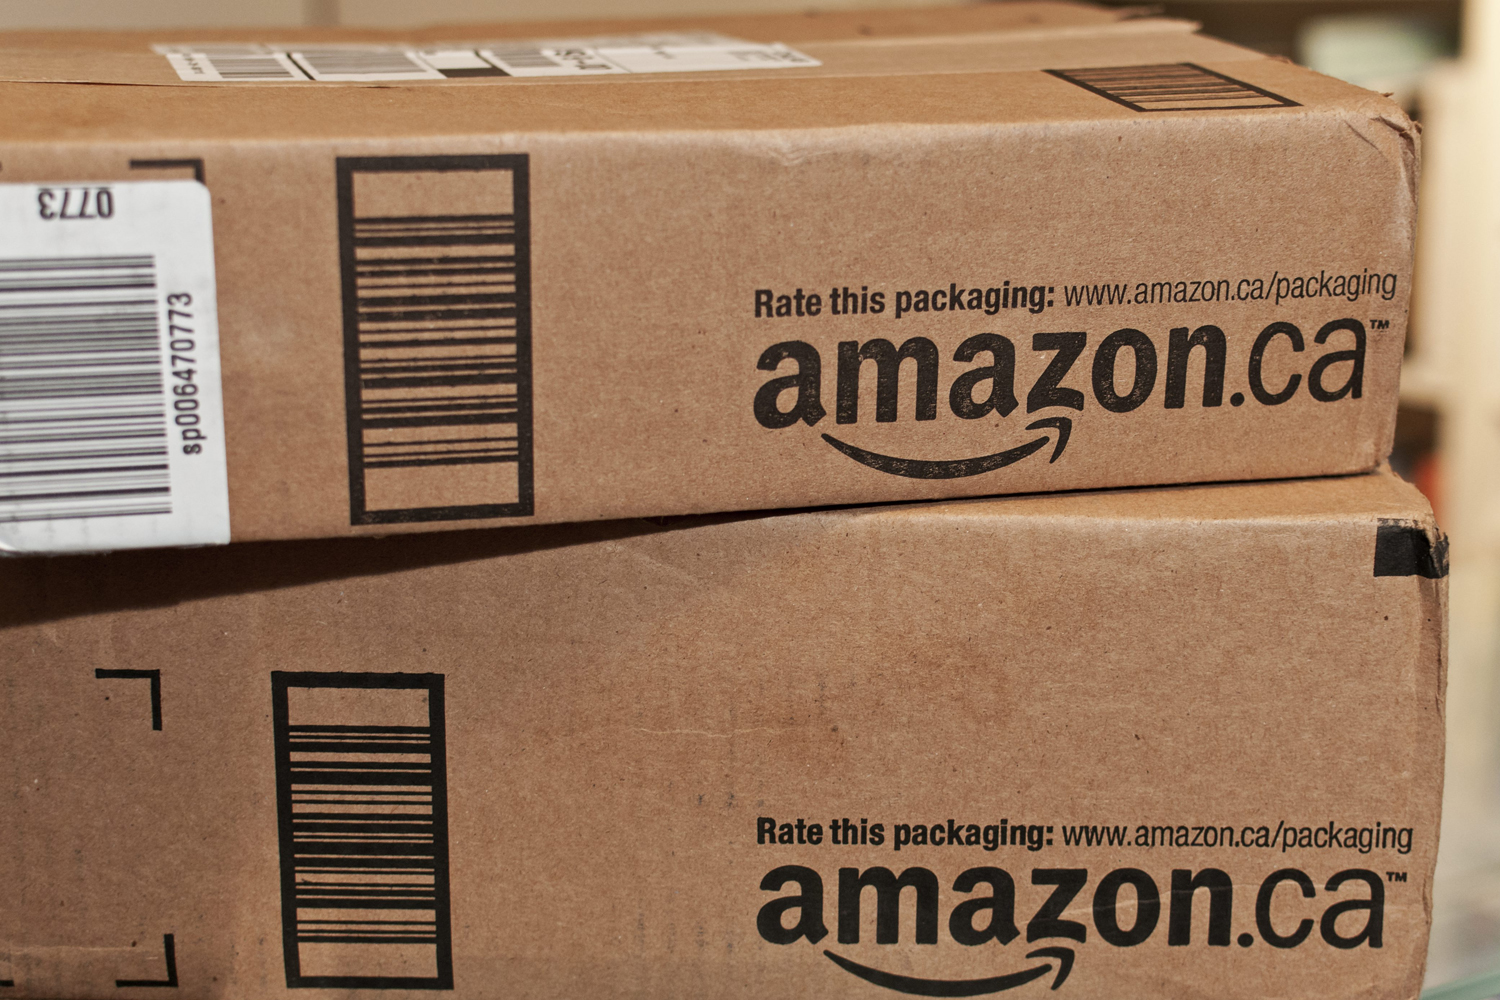 Low Gas Prices >> Amazon's hard-driving corporate culture could happen here